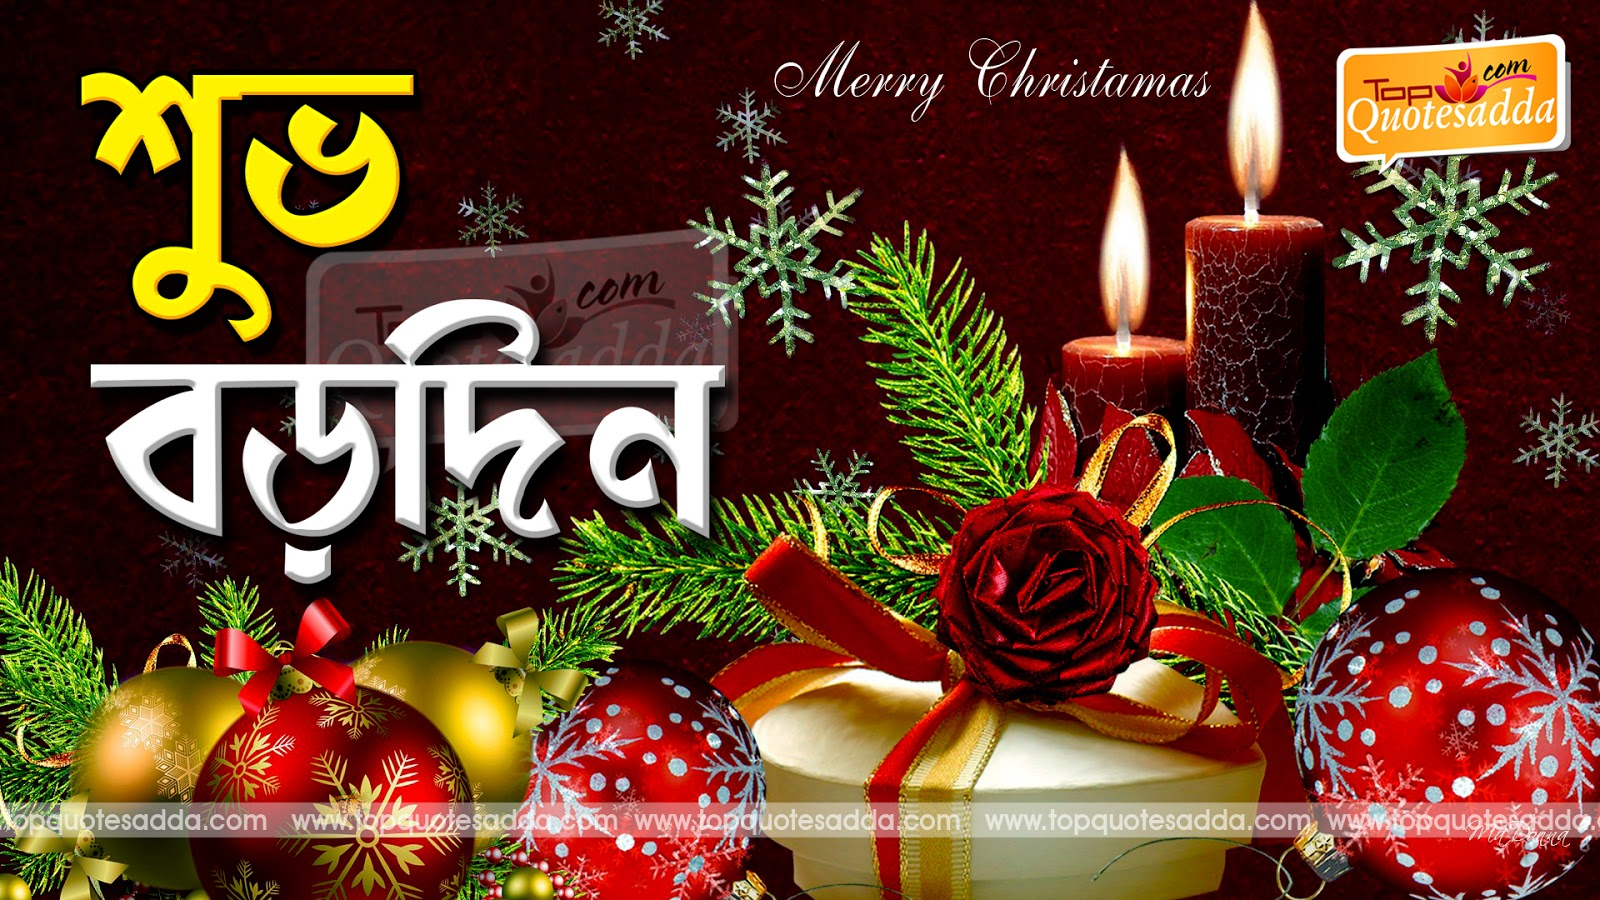 Bengali online christmas cards and picture quotes topquotesadda happy christmas bengali quotes and greetings with images m4hsunfo